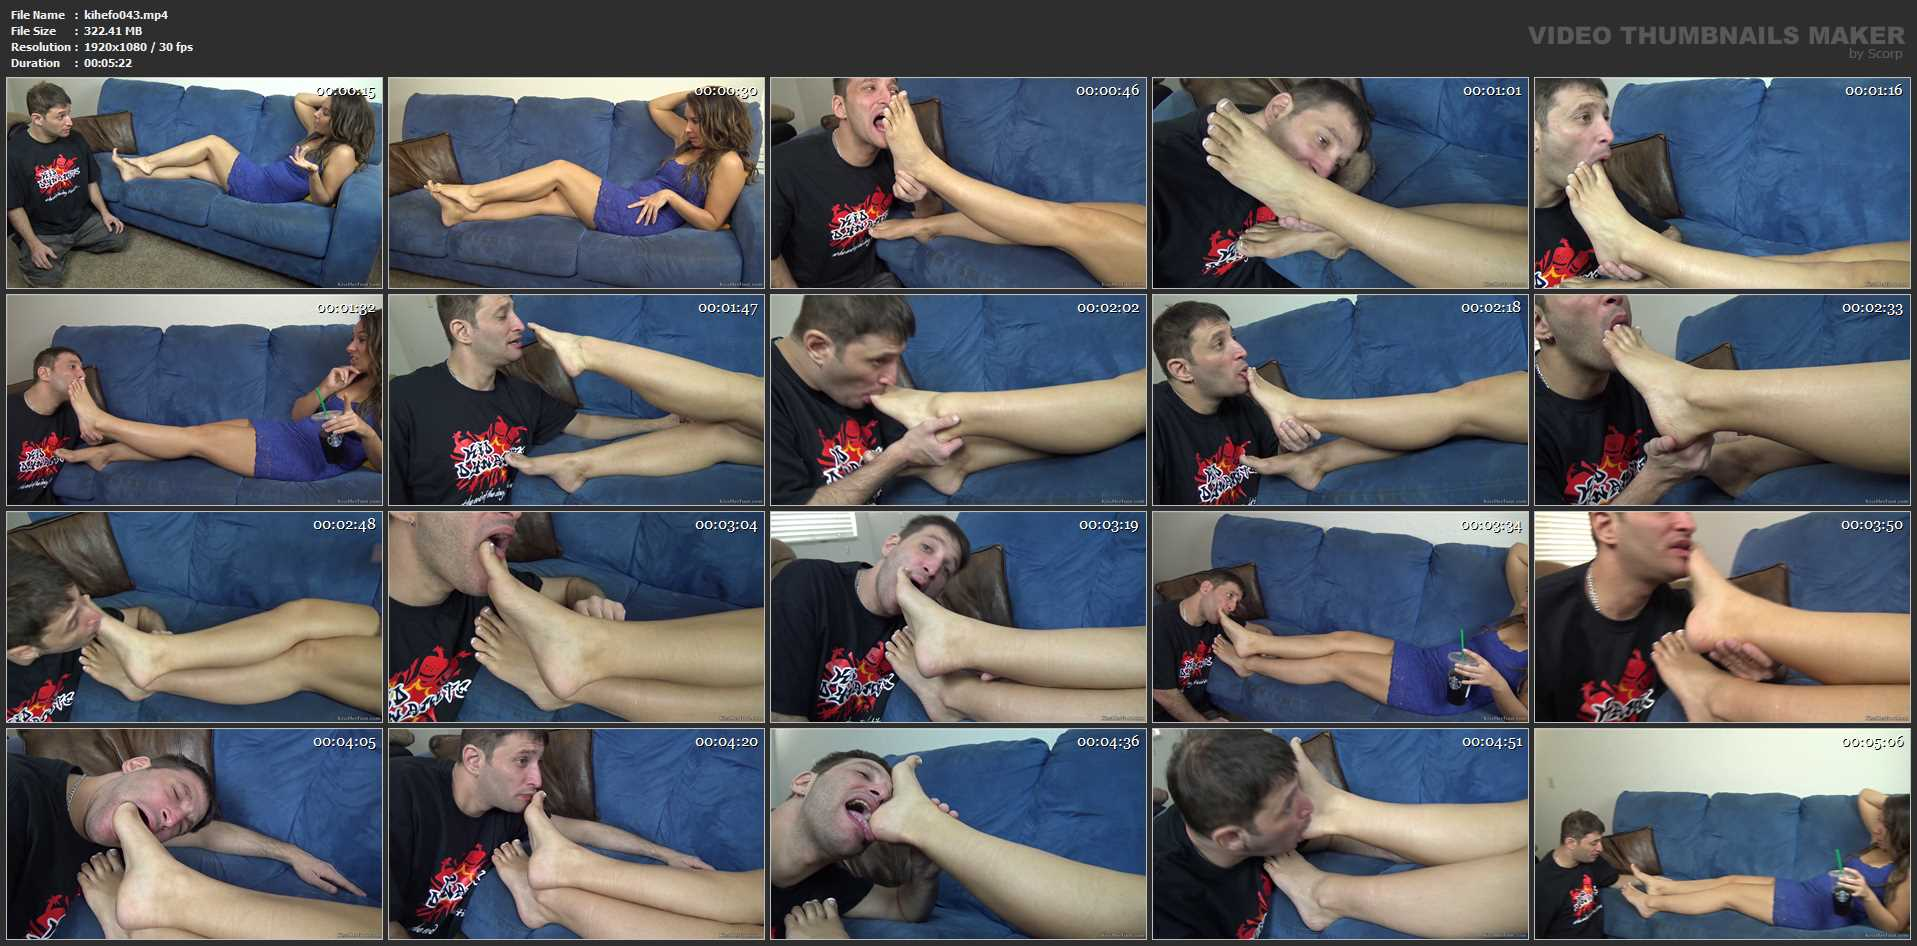 Licking her feet like a dog - KISSHERFOOT - FULL HD/1080p/MP4